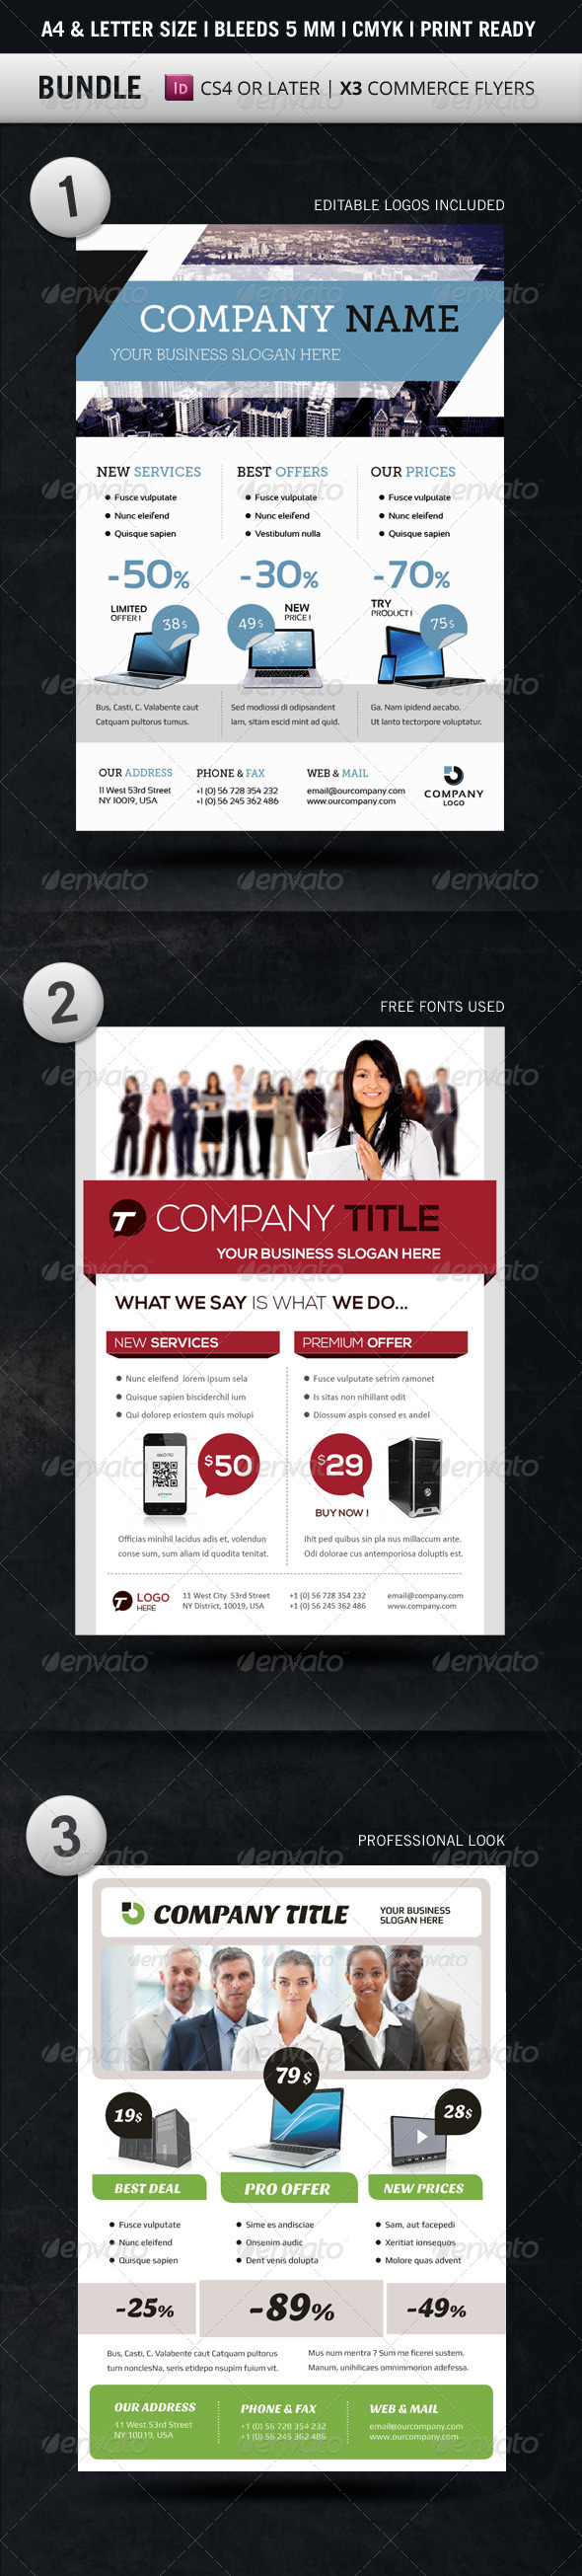 Bundle Business Flyer Templates A4 & Letter